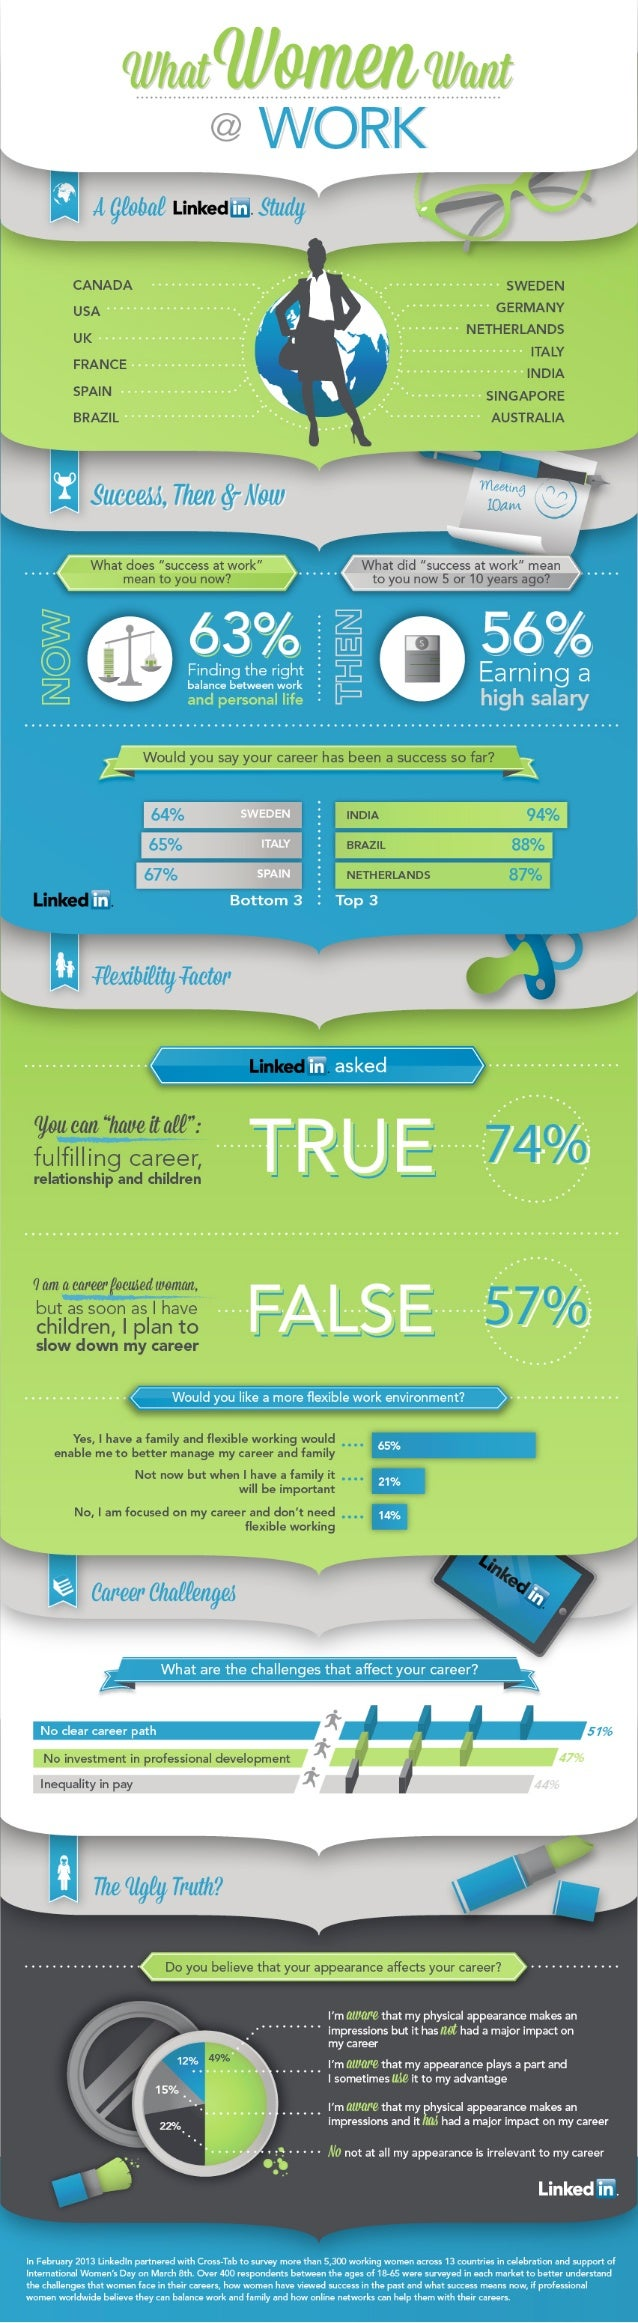 LinkedIn Women @ Work Infographic